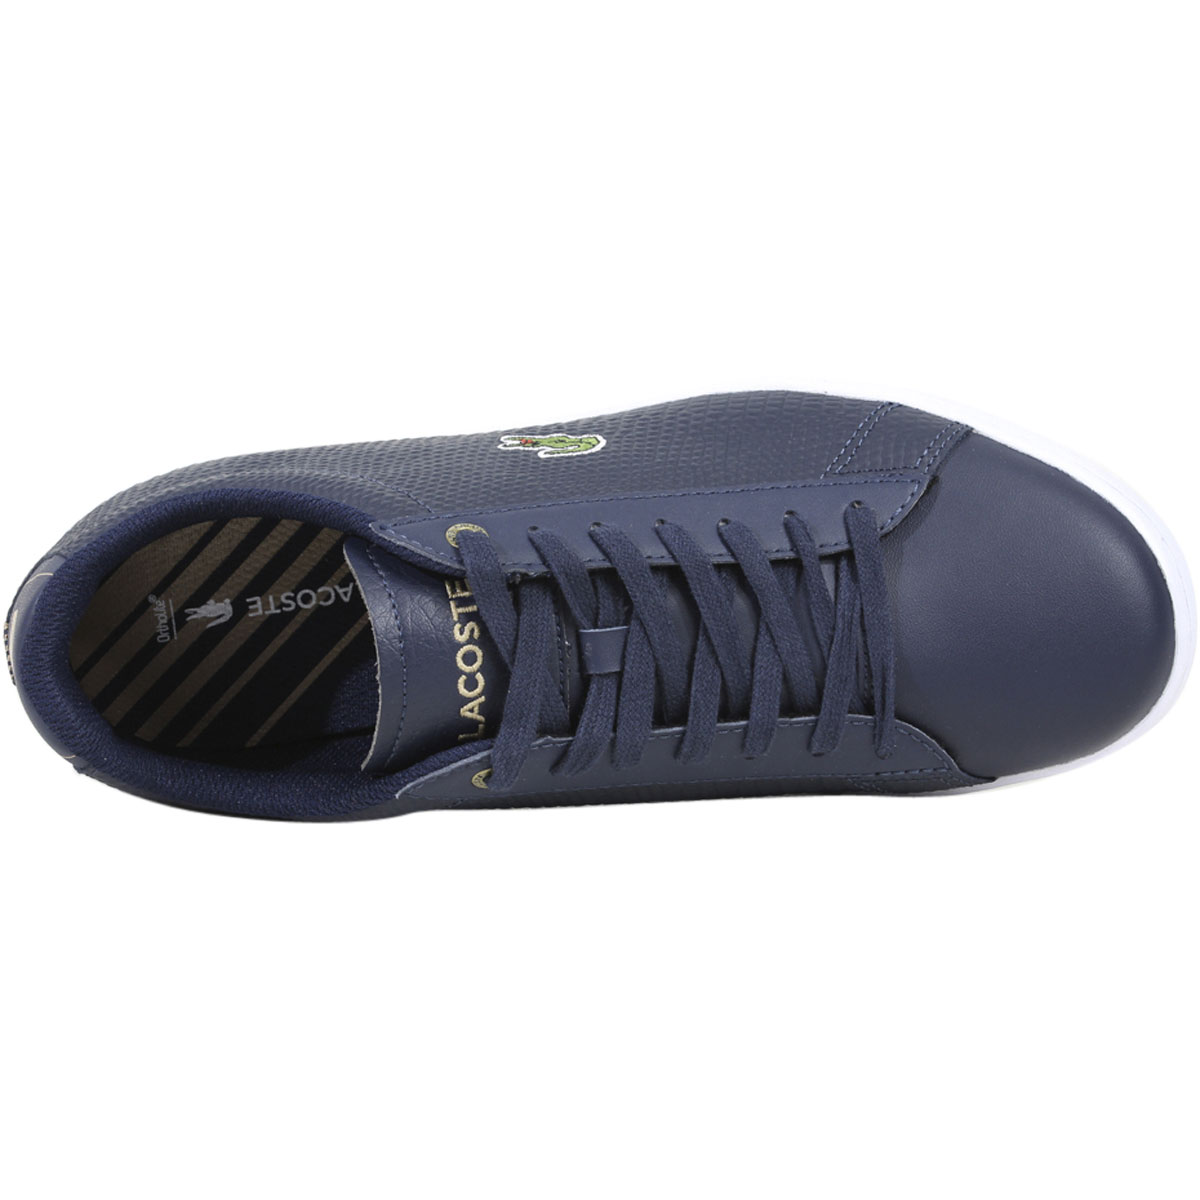 Lacoste-Men-039-s-Carnaby-EVO-118-Trainers-Sneakers-Shoes thumbnail 21